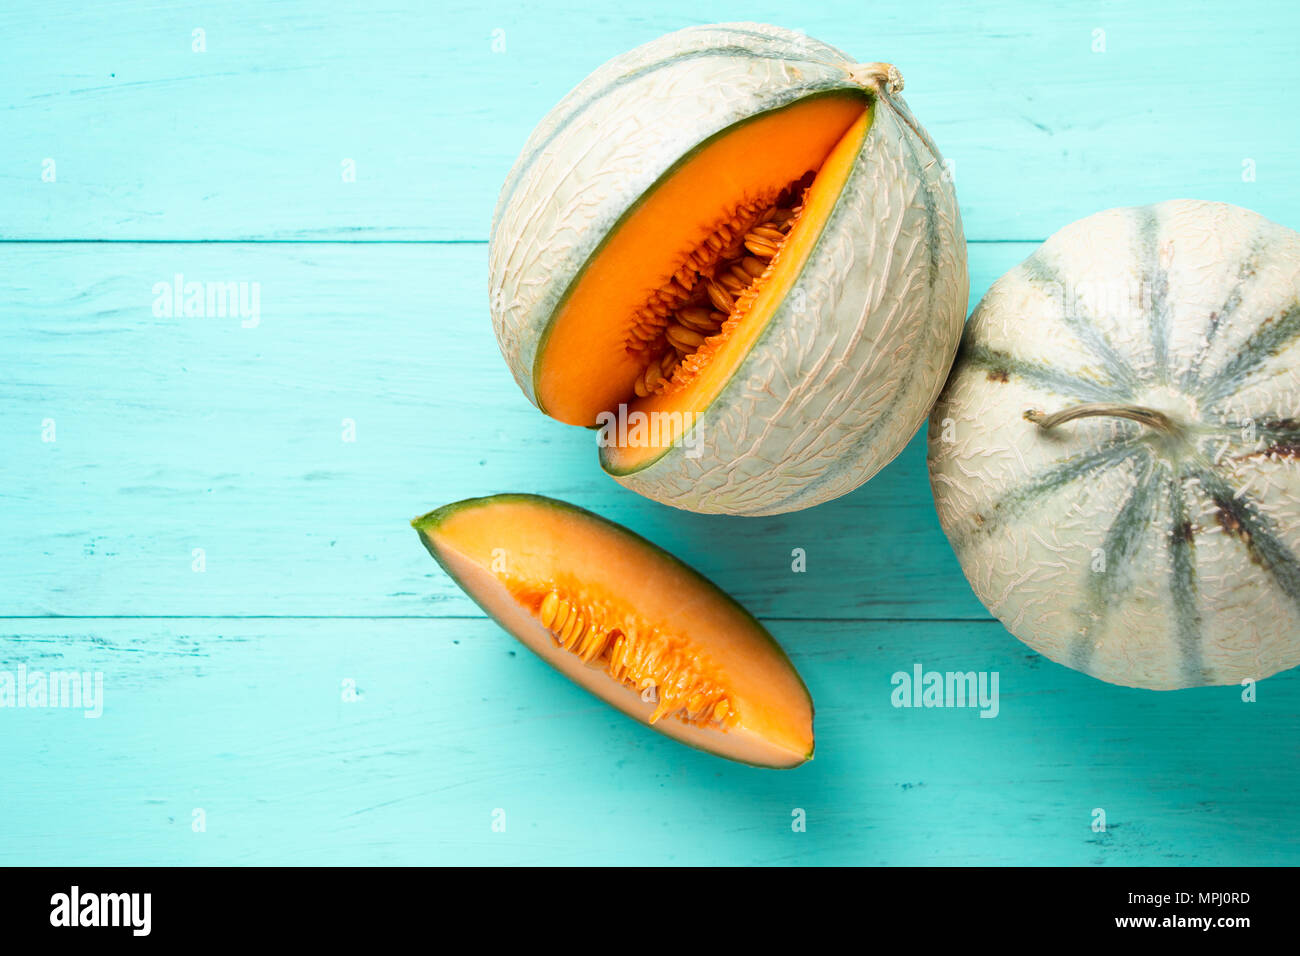 Two cantaloupe melons and one slice on an aquamarine wooden planks. Top view - Stock Image